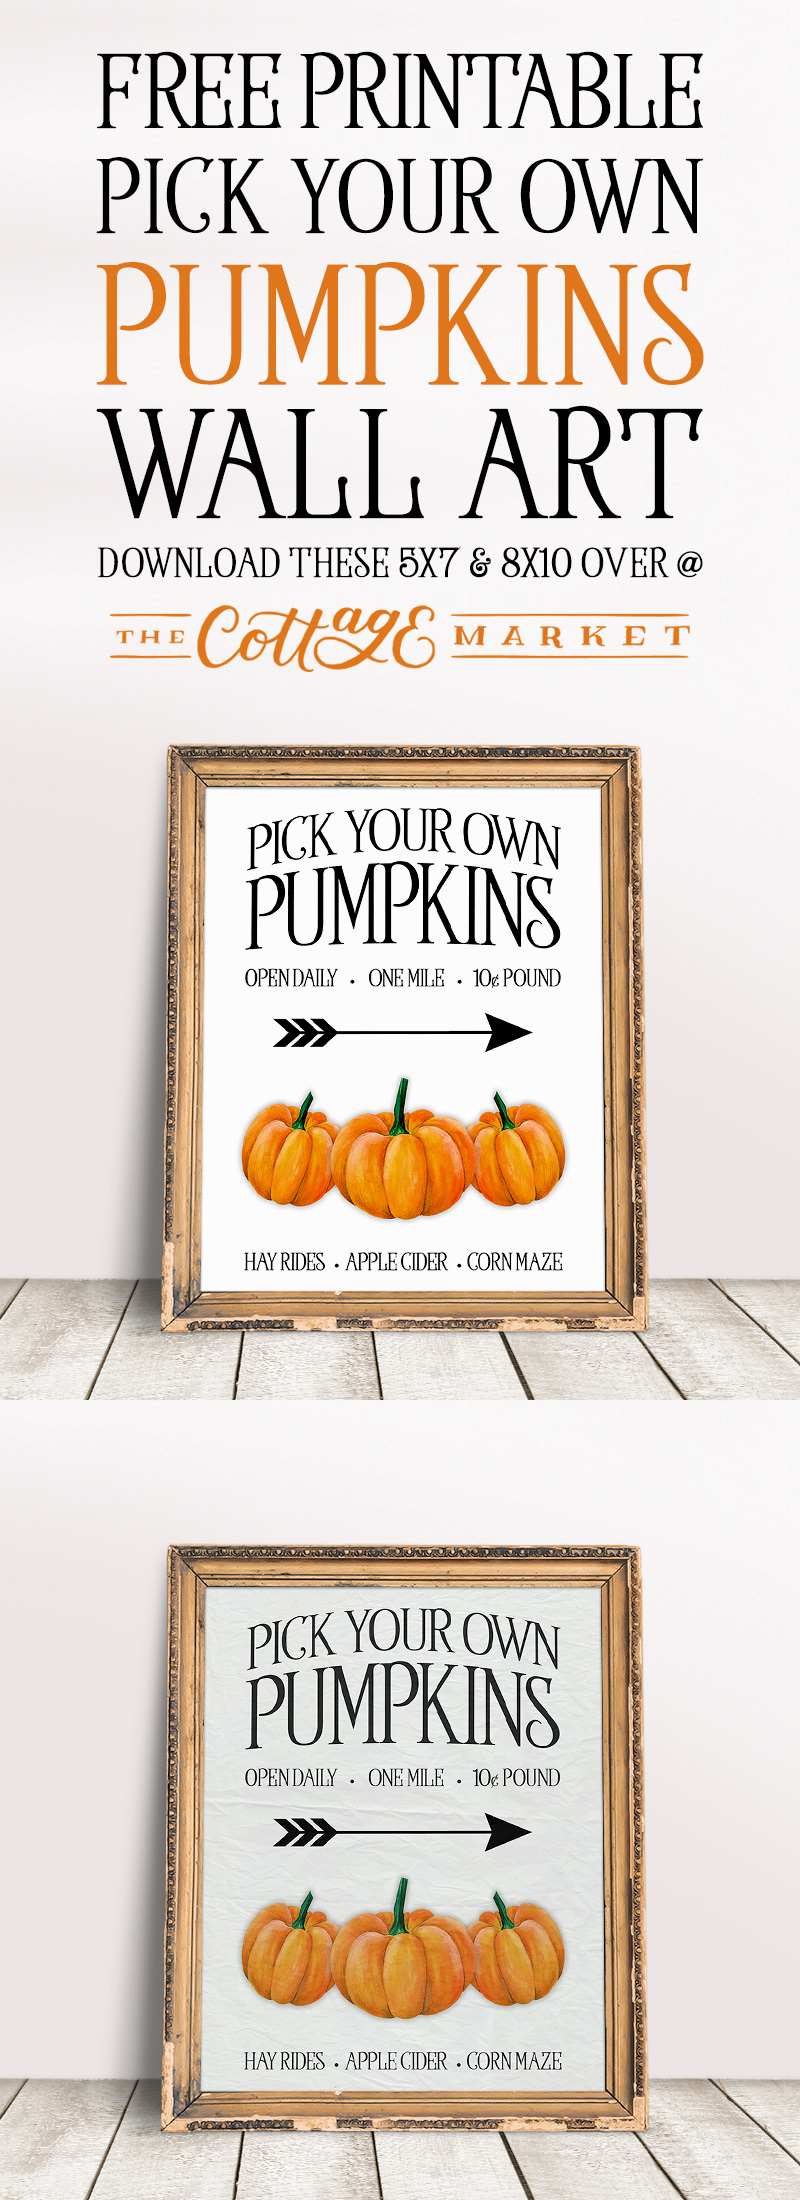 https://thecottagemarket.com/wp-content/uploads/2018/08/tcm-white-t-3-pumpkin.jpg